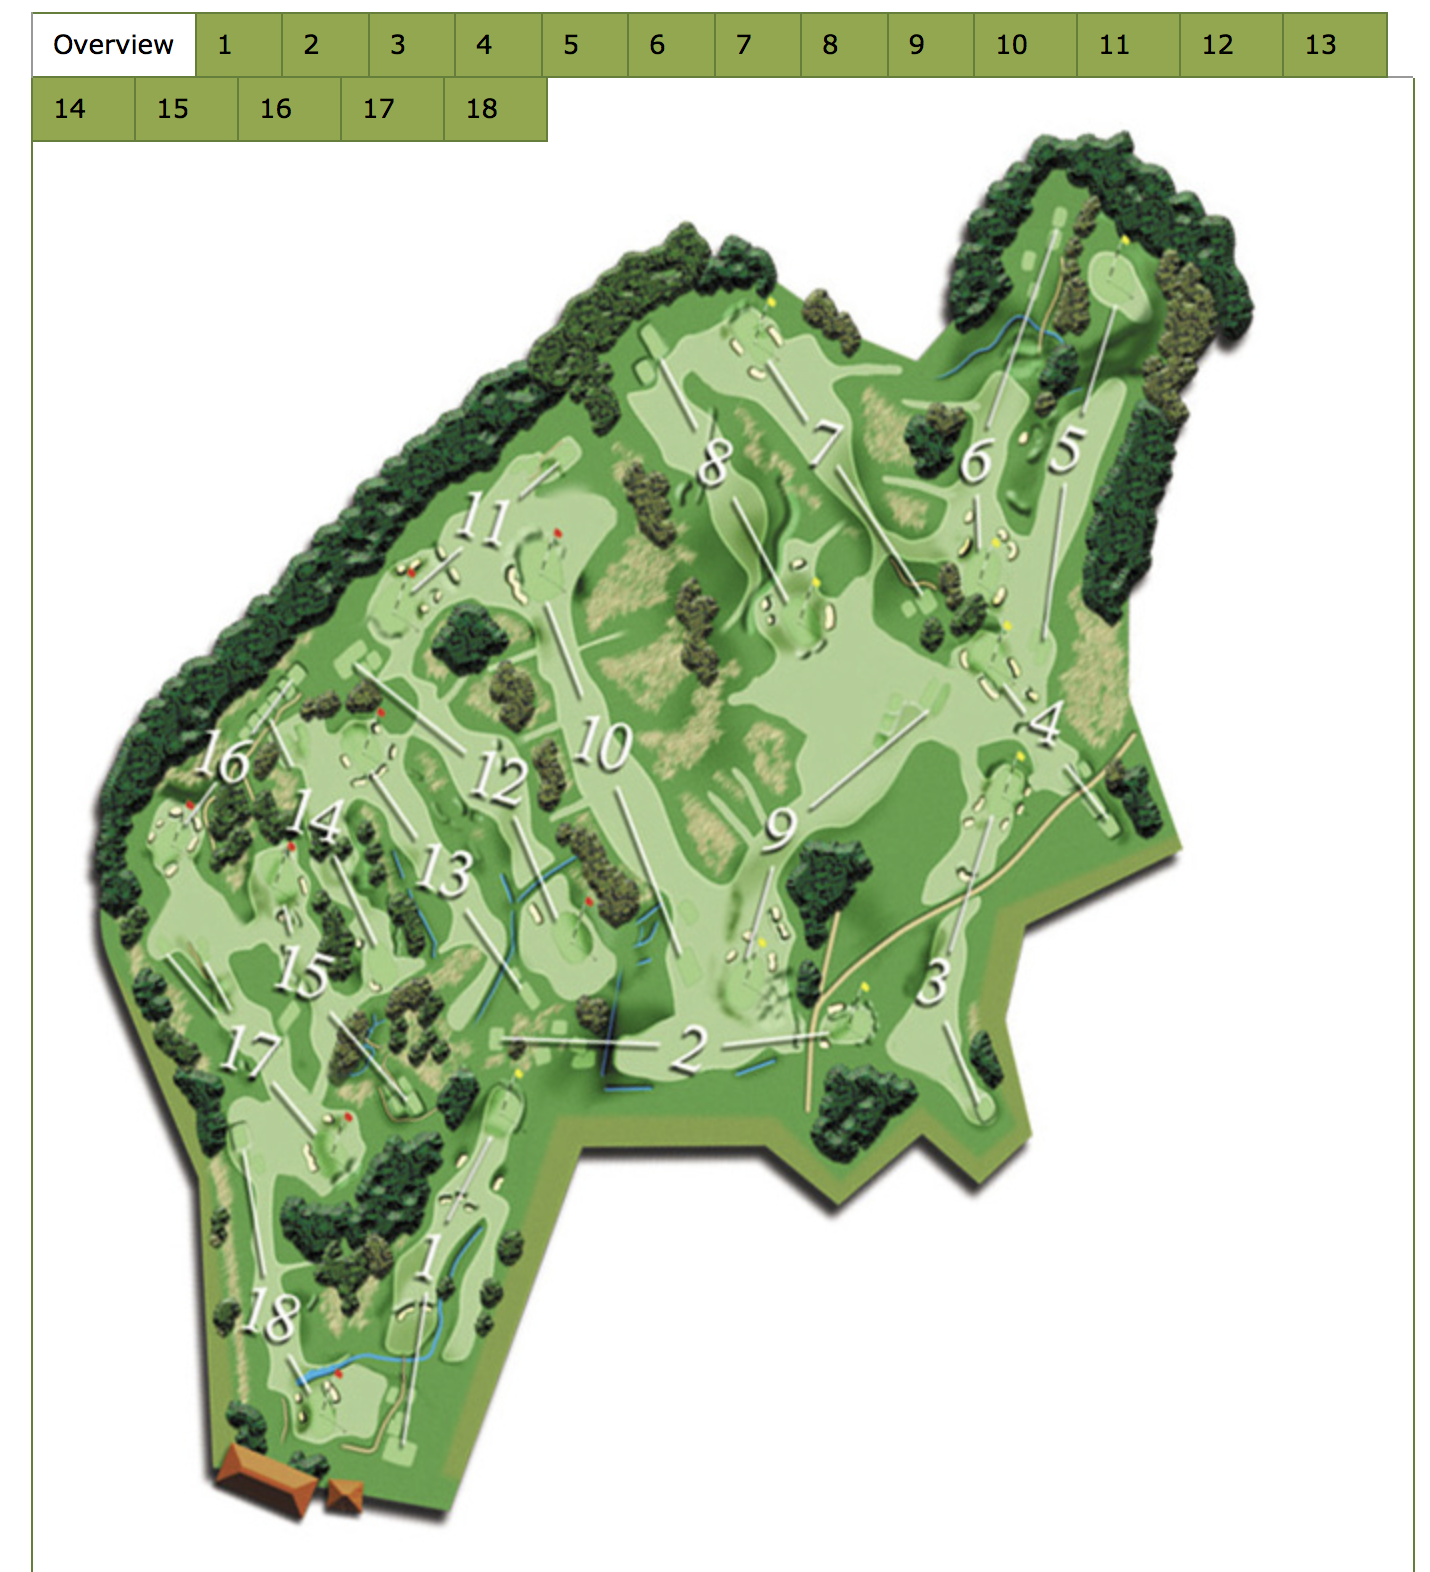 This is the map of the course. The guide is interactive and can be found at:  http://www.pitlochrygolf.co.uk/golf-course/